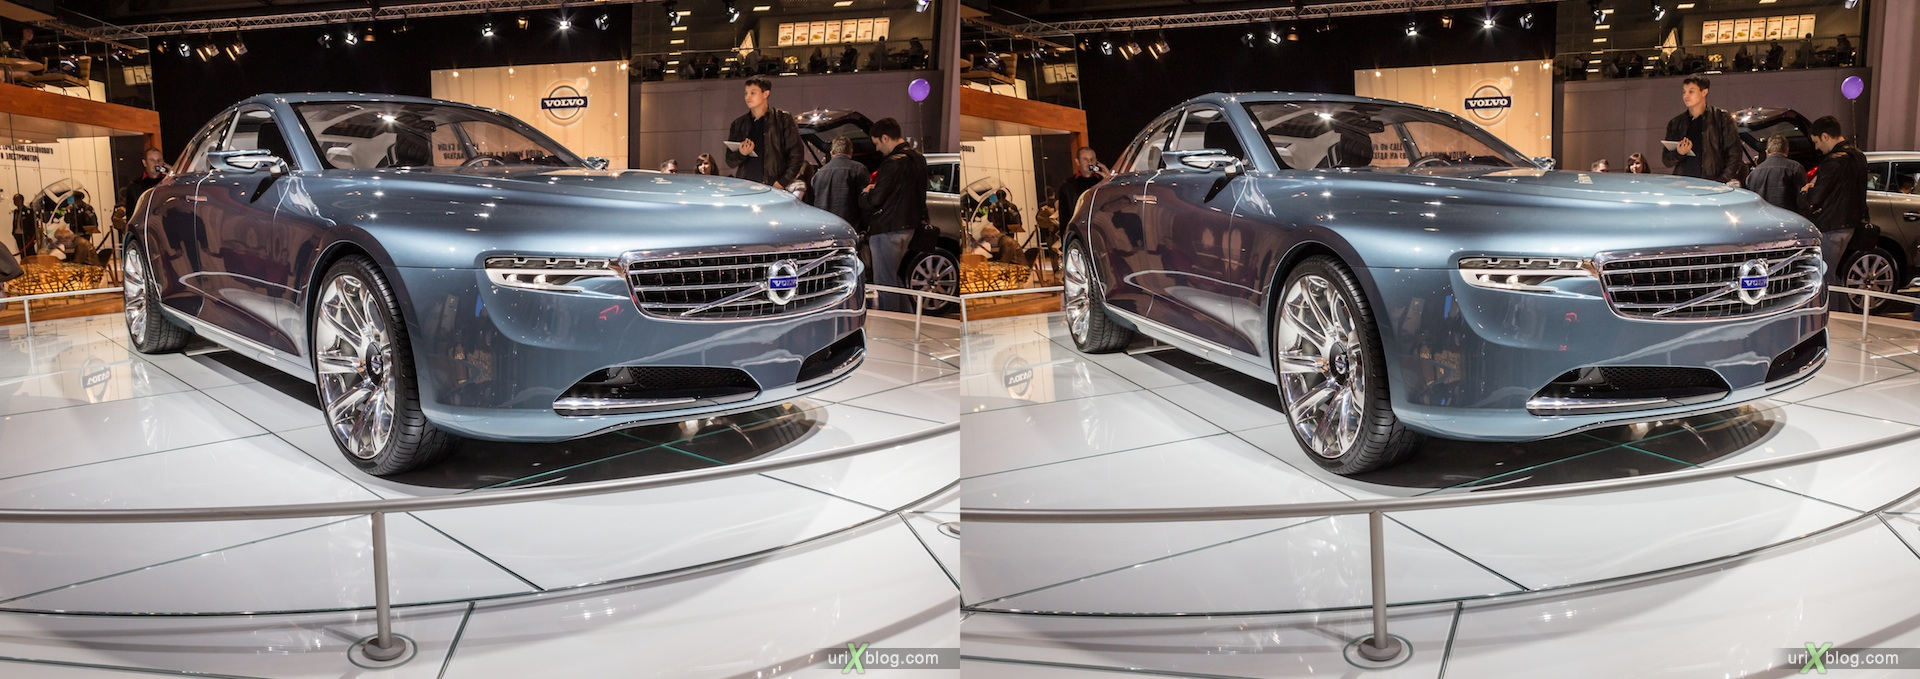 2012, Volvo, Moscow International Automobile Salon, auto show, 3D, stereo pair, cross-eyed, crossview